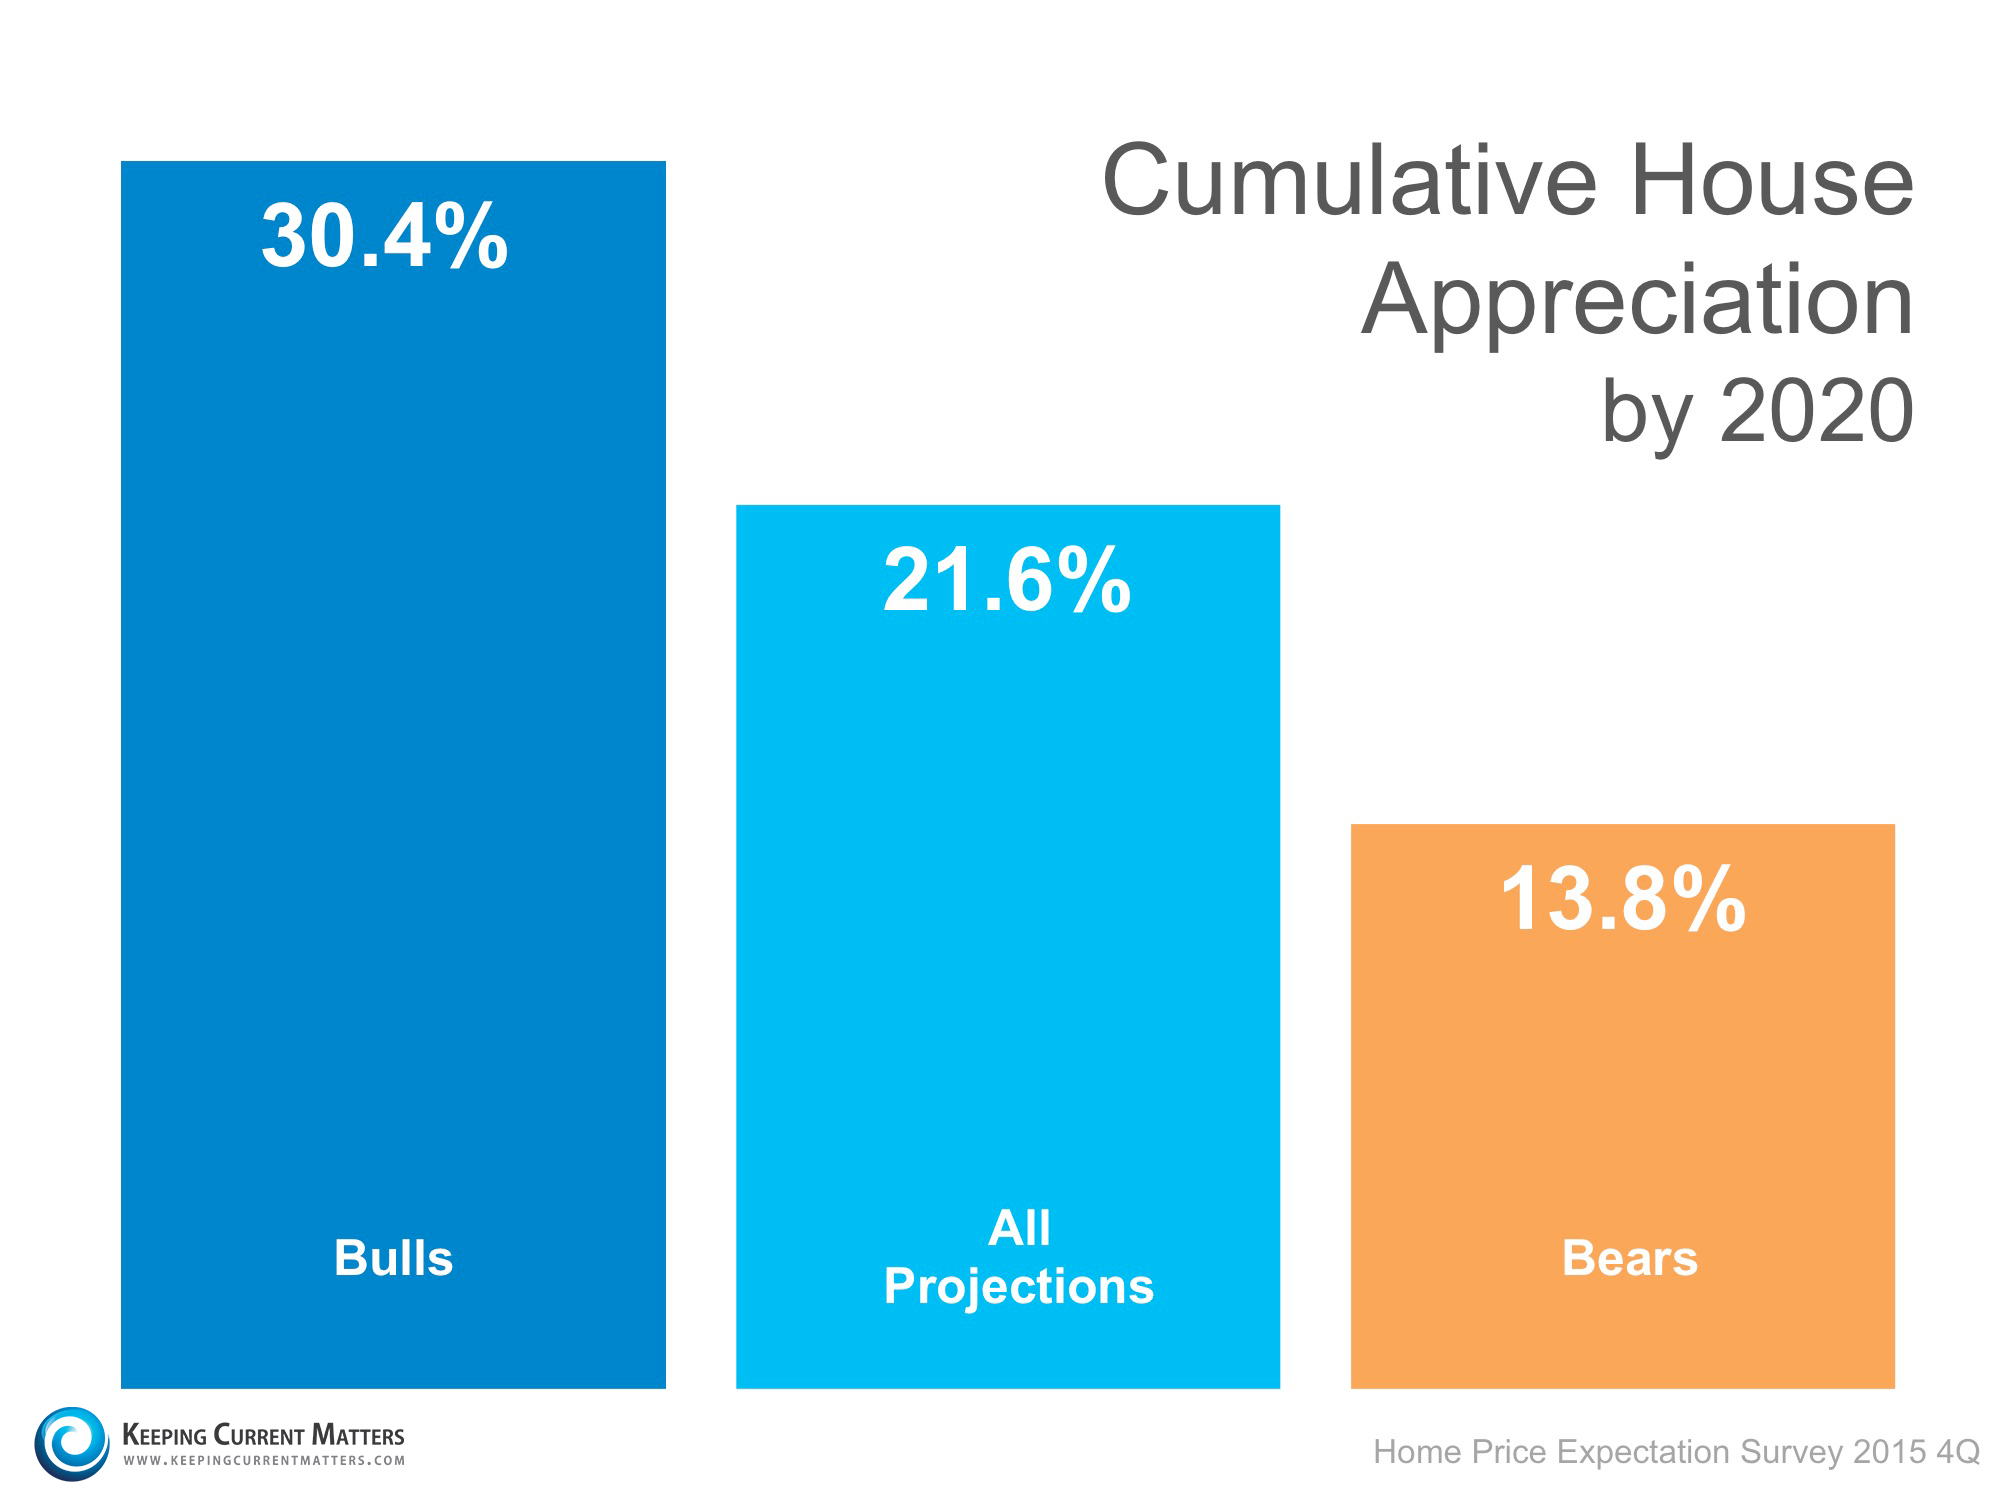 HPES-Cumulative-Appreciation-by-20201